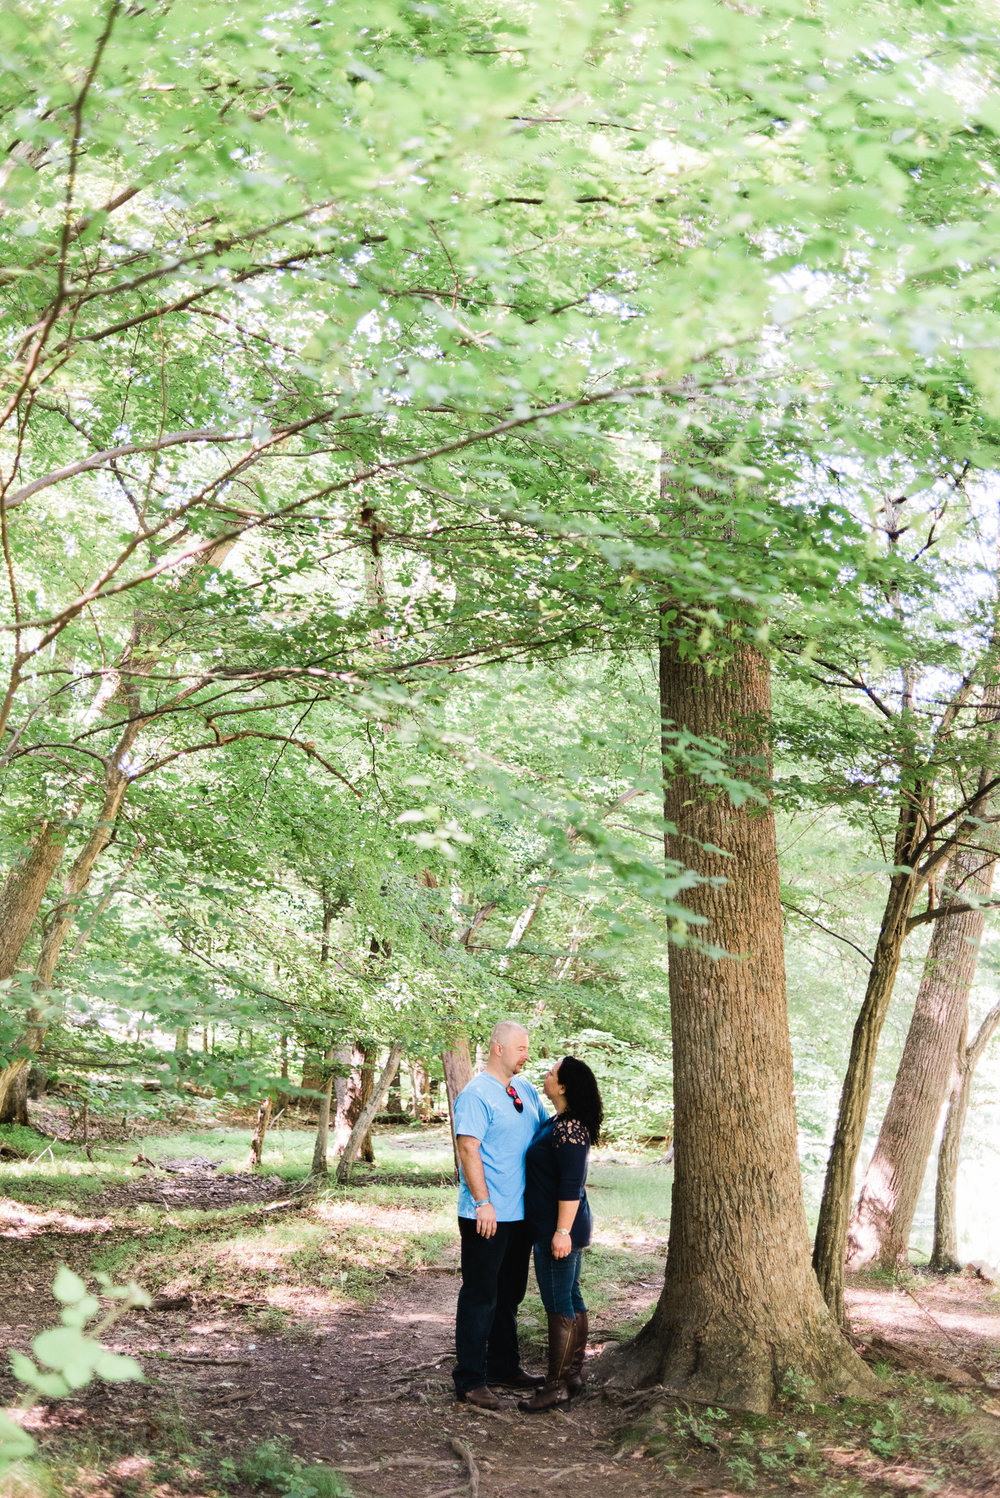 Rina and David Engagement 06/11/17. Photo Credit: Nicholas Karlin karlinvillondo.com